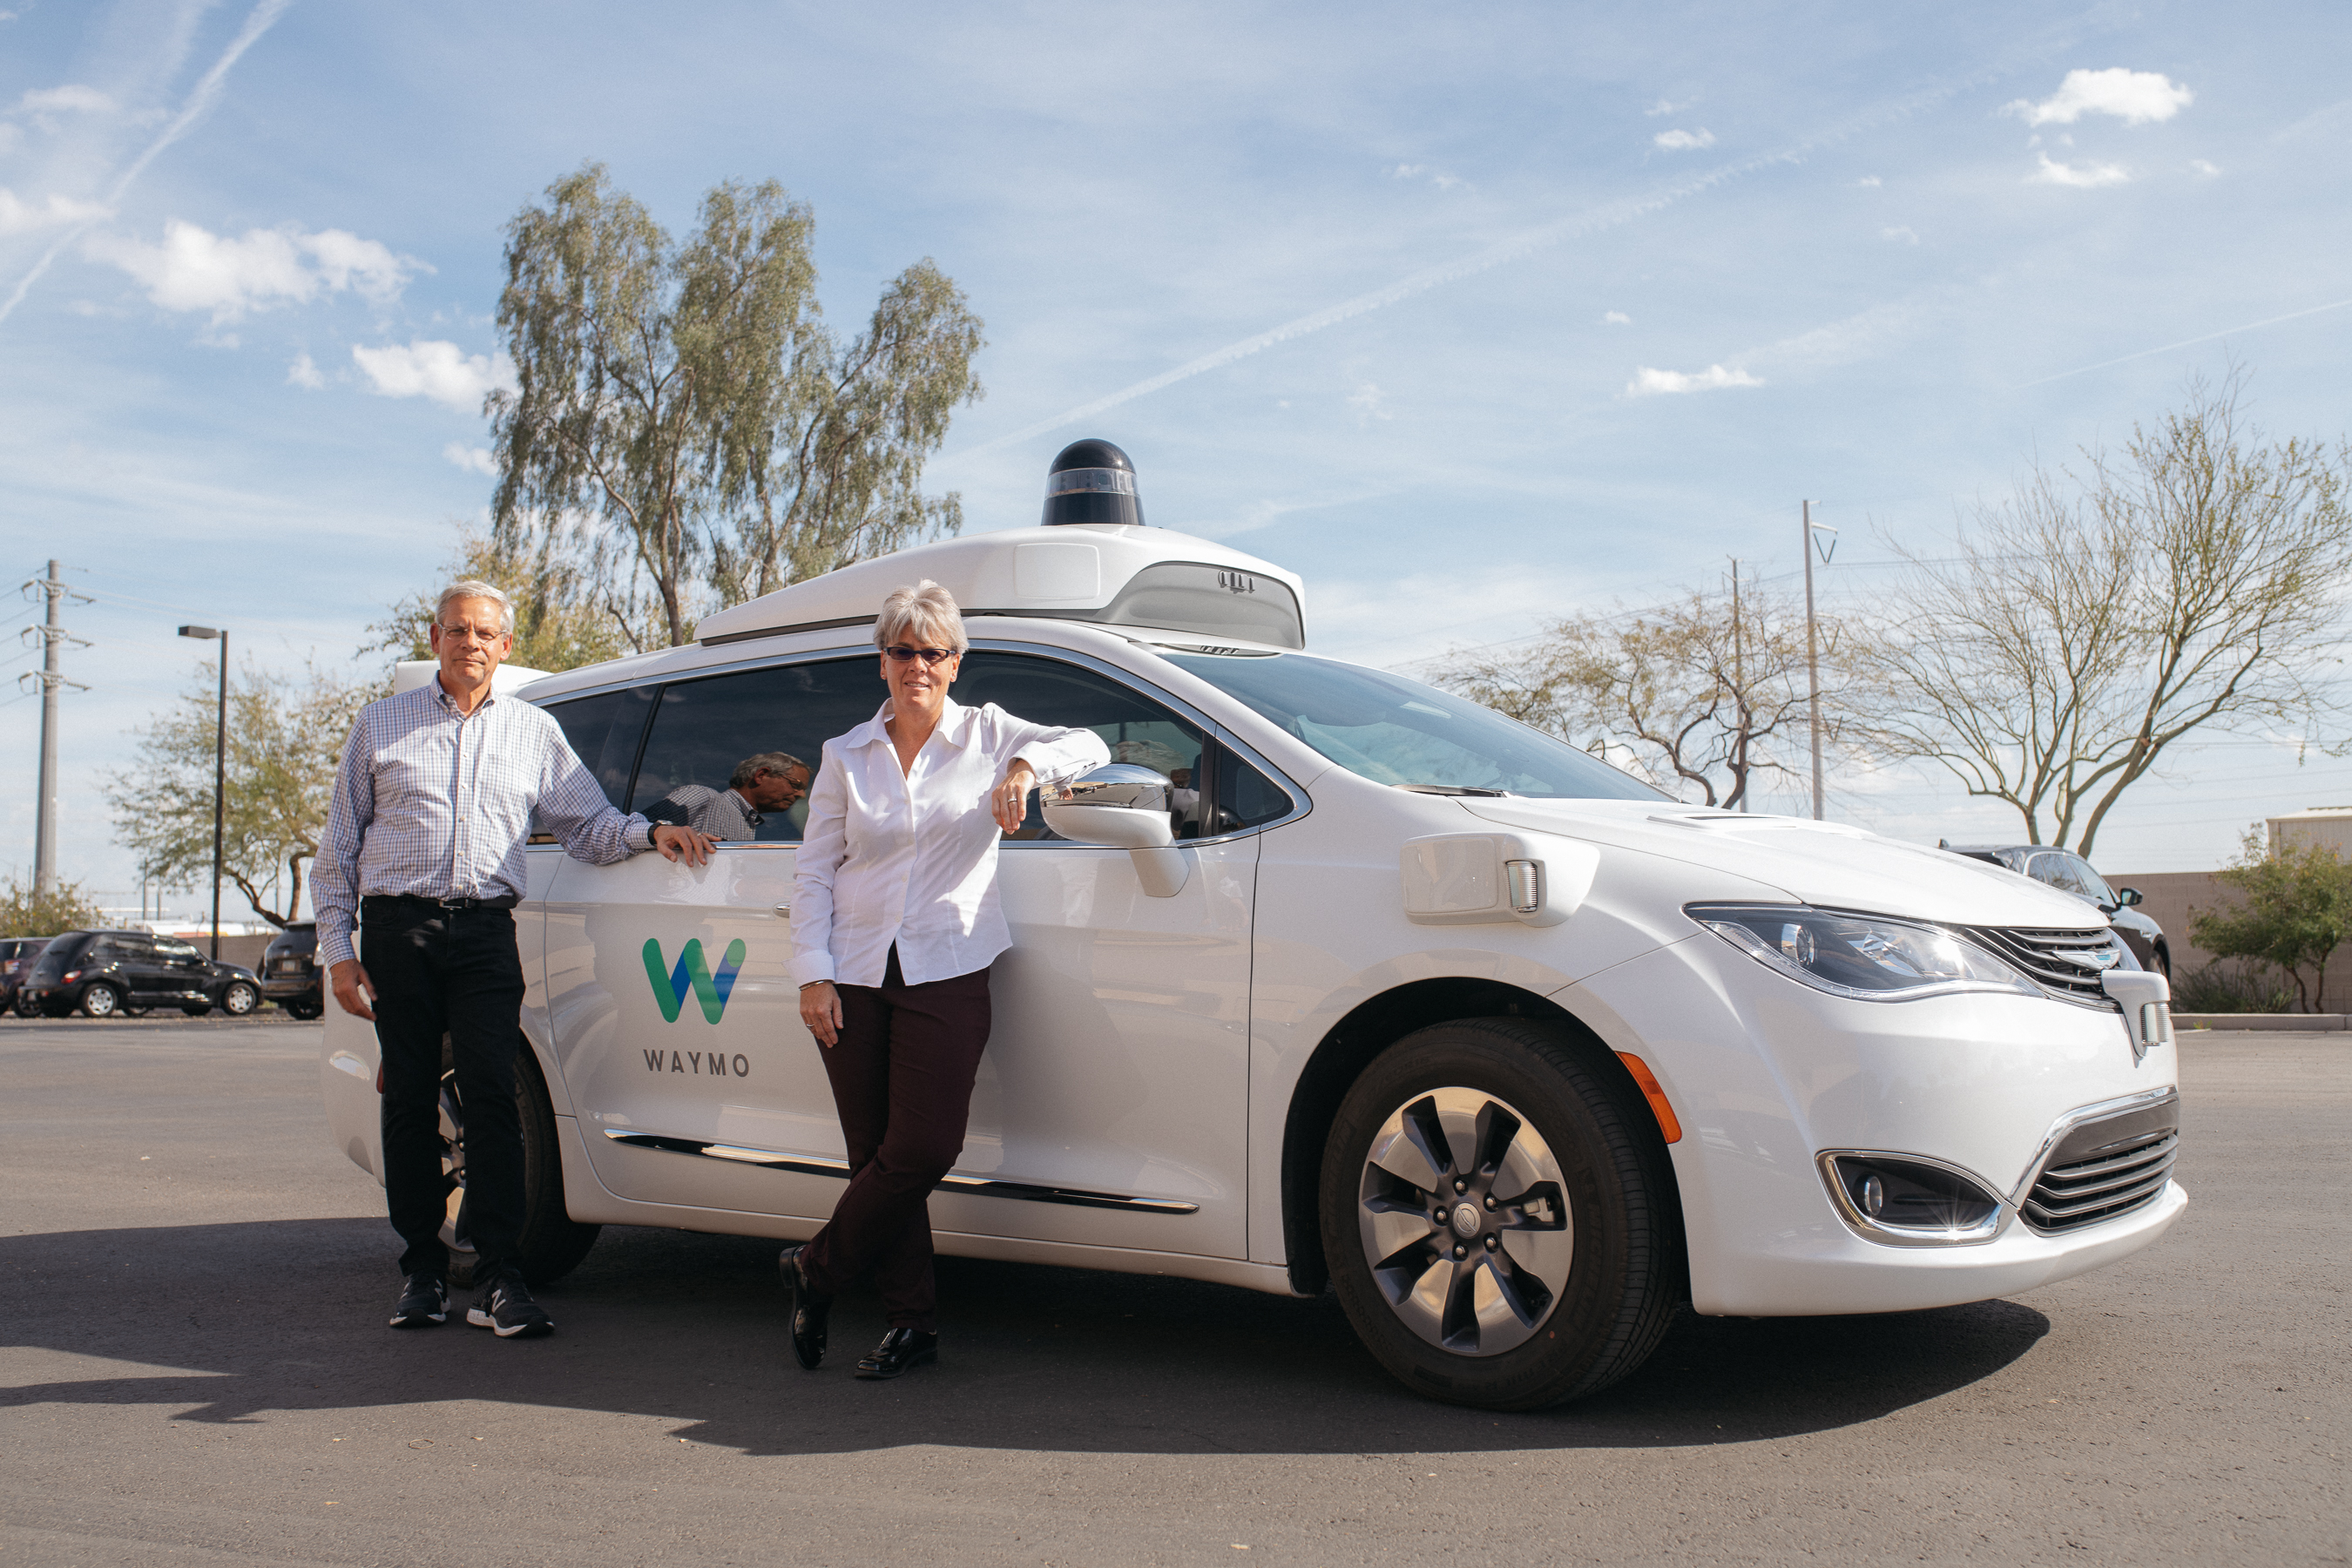 Alex Epstein and Kelly Nantel of the National Safety Council beside a Waymo vehicle